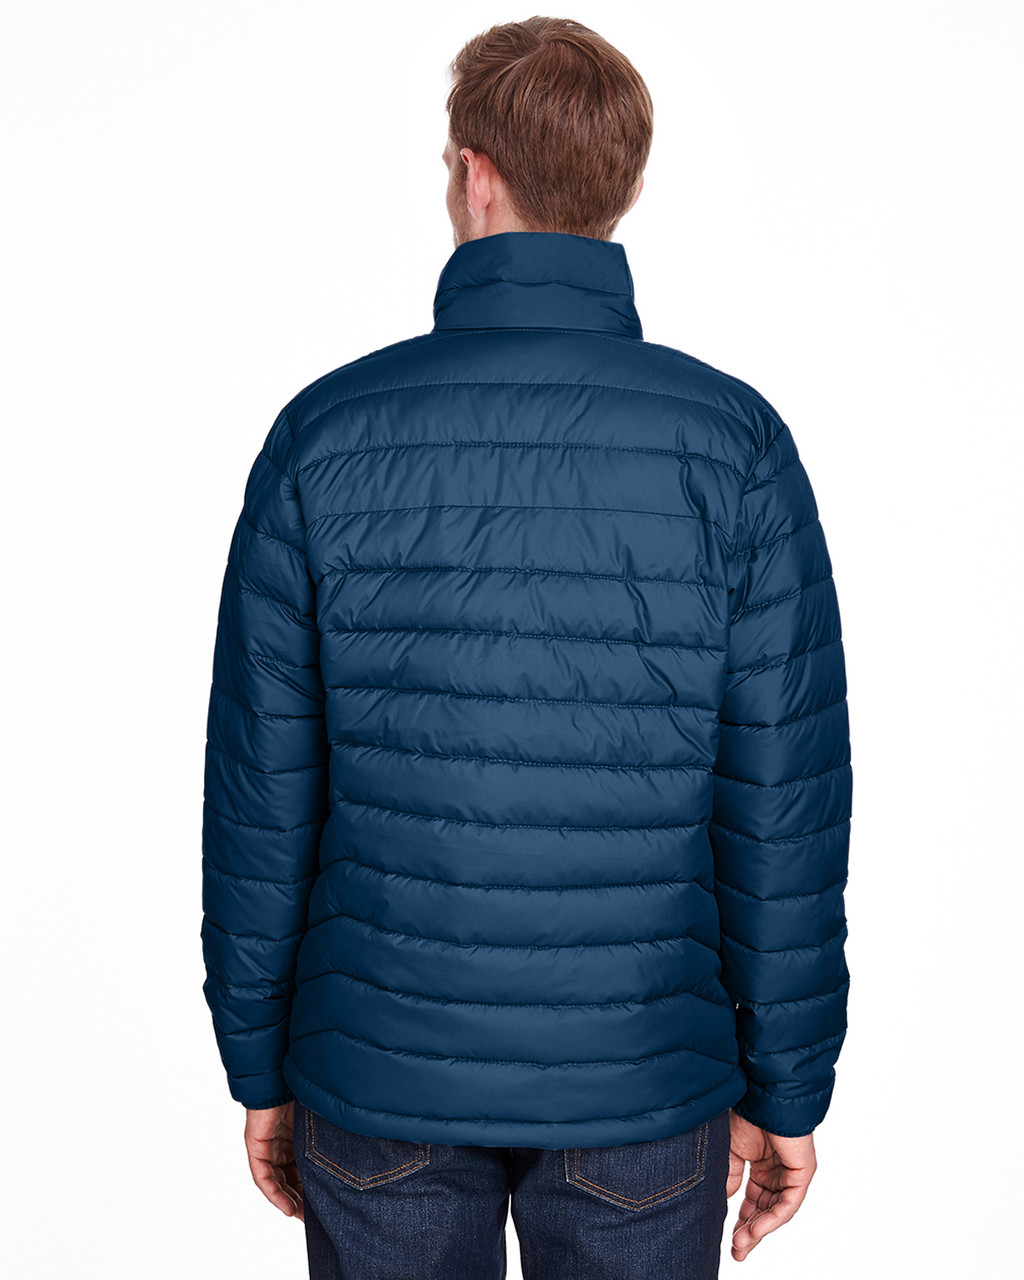 Collegiate Navy - Back, 1698001 Columbia Men's Powder Lite™ Jacket | Blankclothing.ca